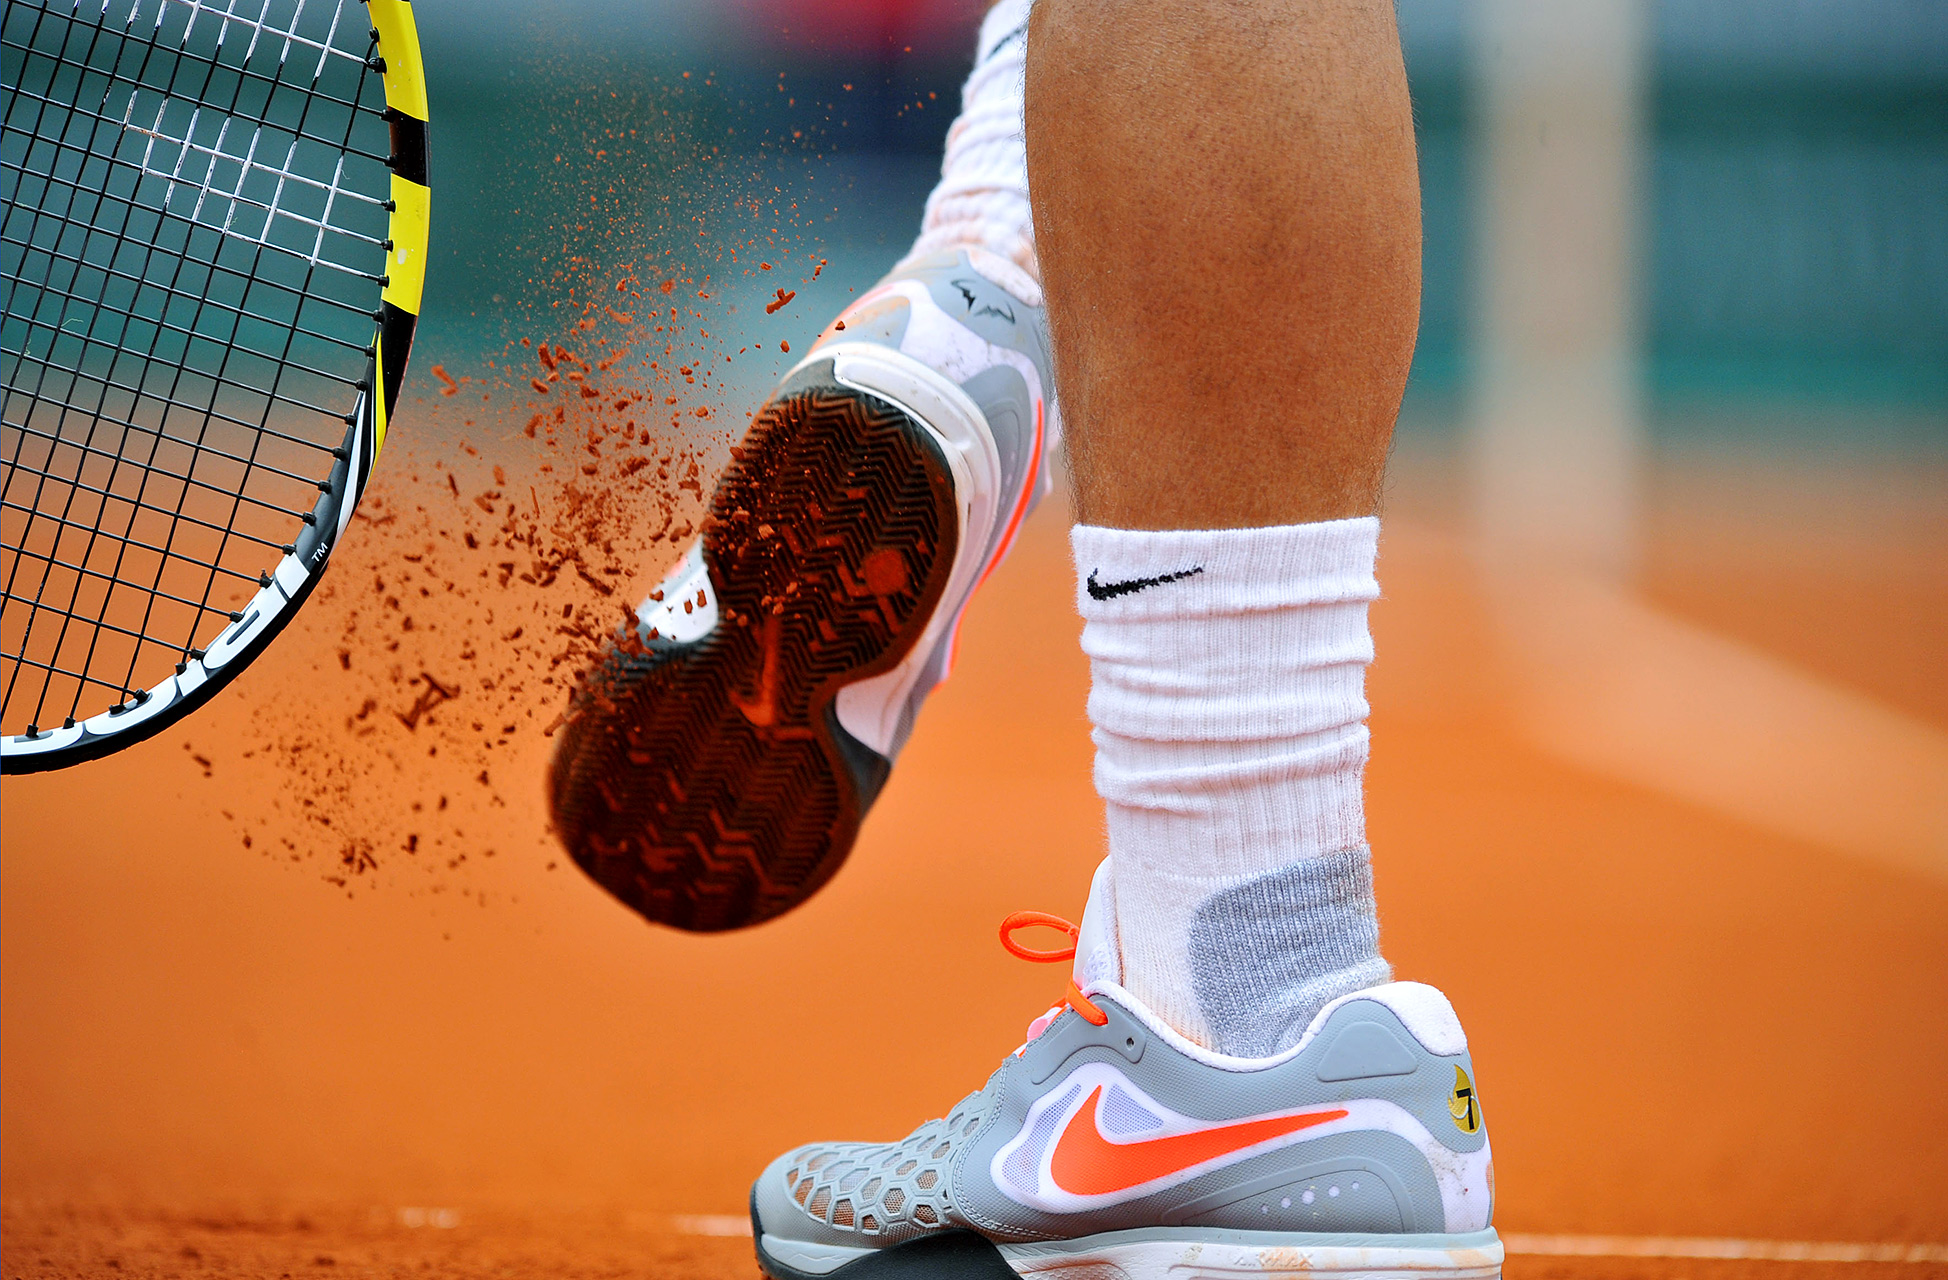 French Open Photo